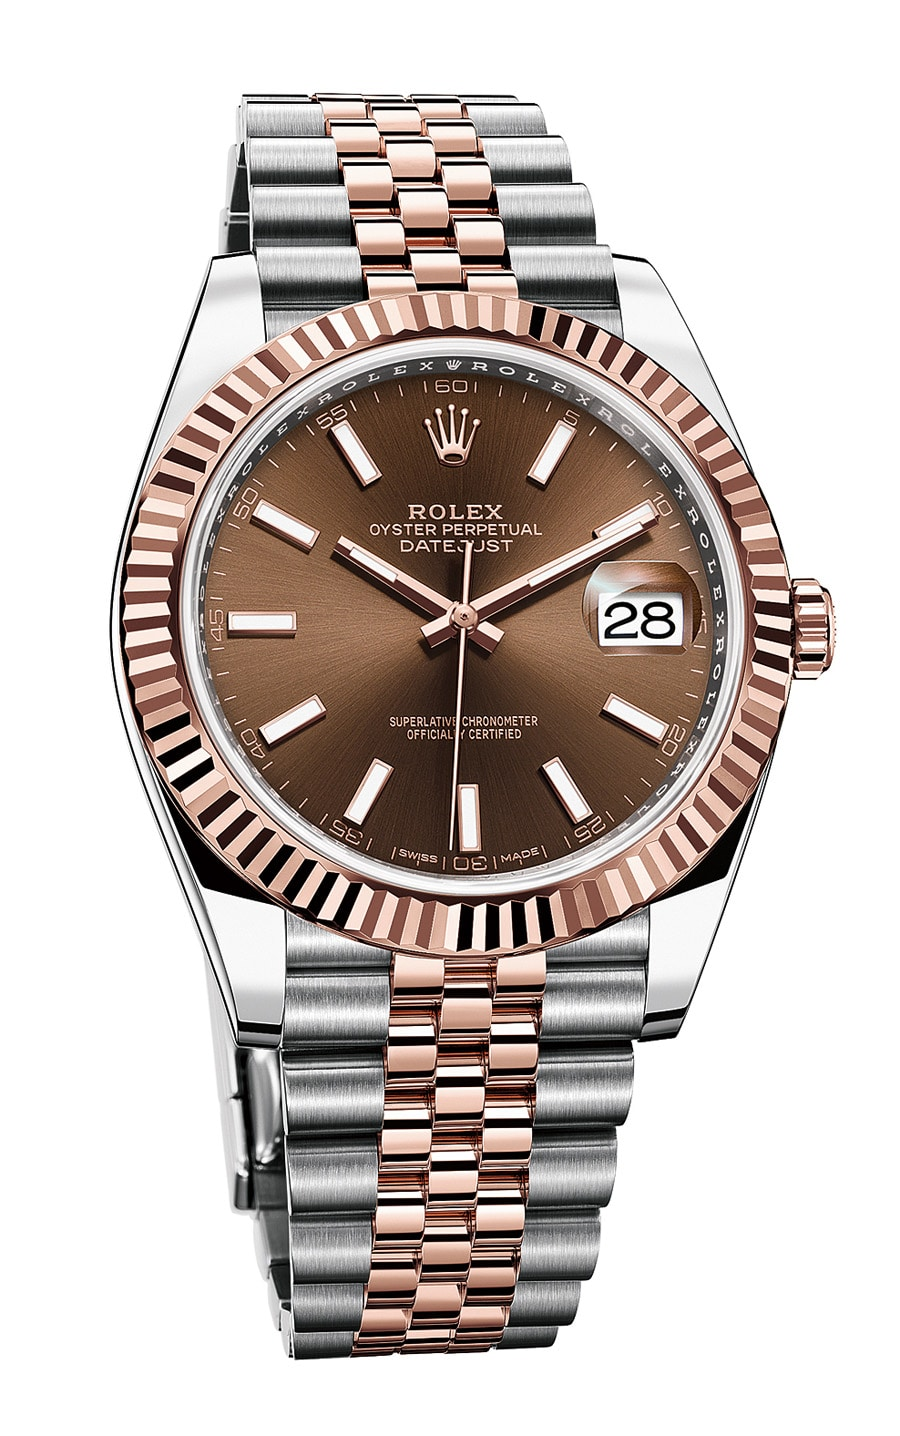 Rolex: Oyster Perpetual Datejust 41 in Rolesor Everose mit Jubilé-Band